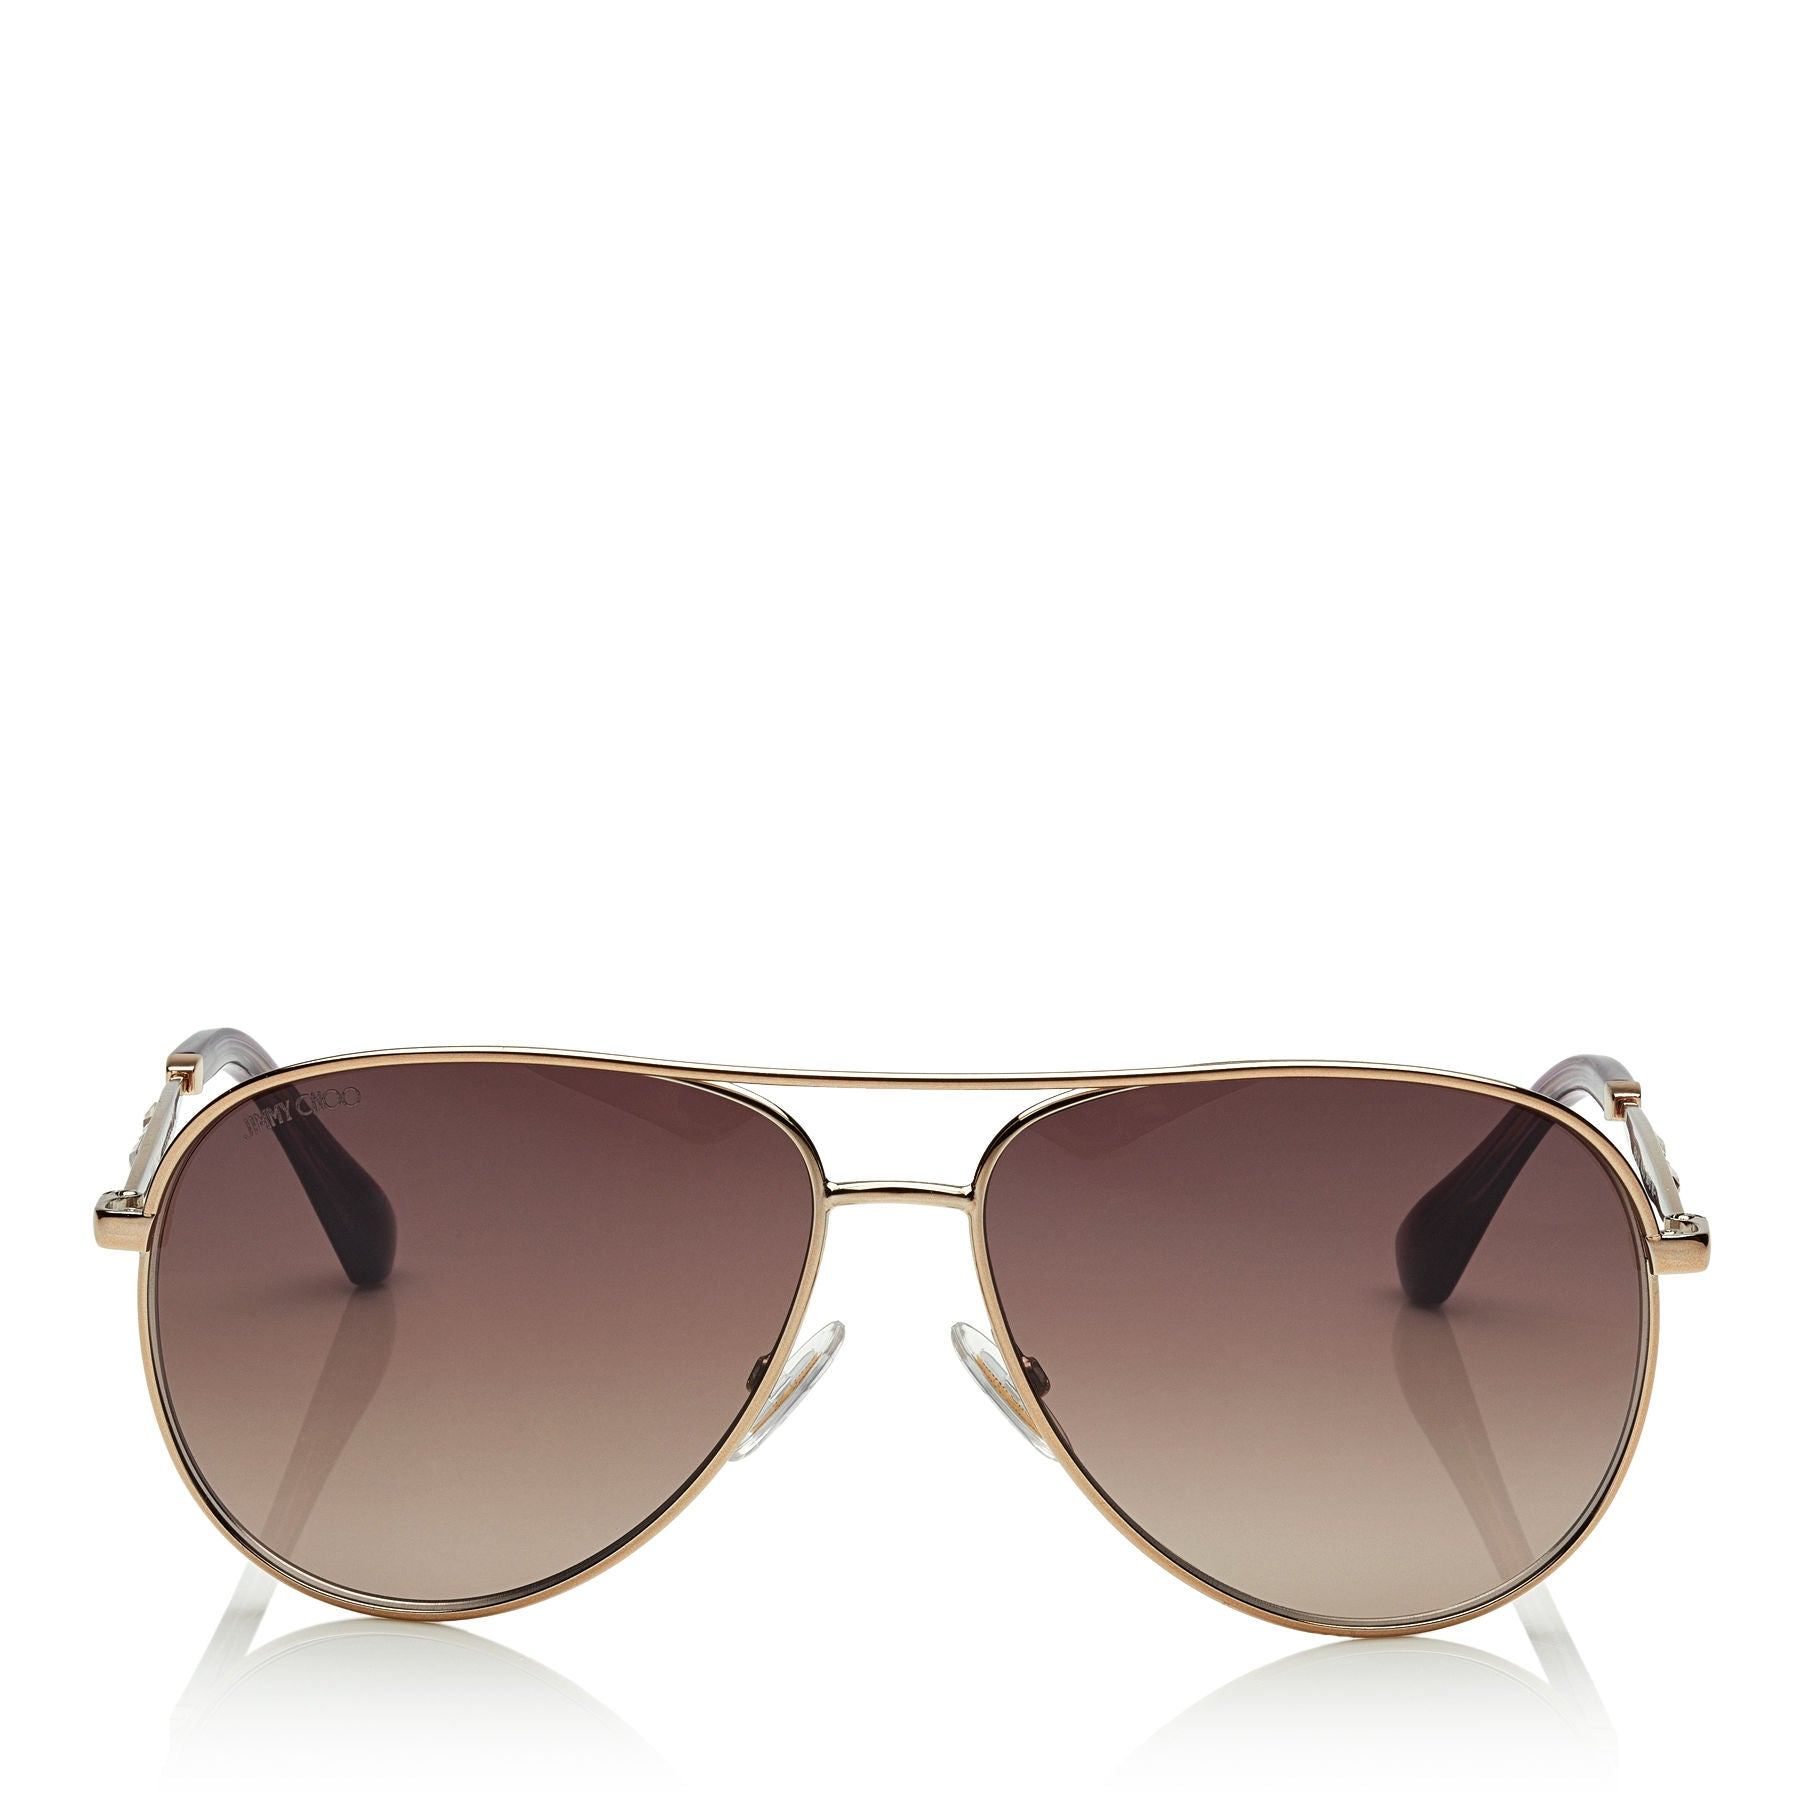 JIMMY CHOO Jewly Bronze Aviator Sunglasses ITEM NO. JEWLYS58E14J